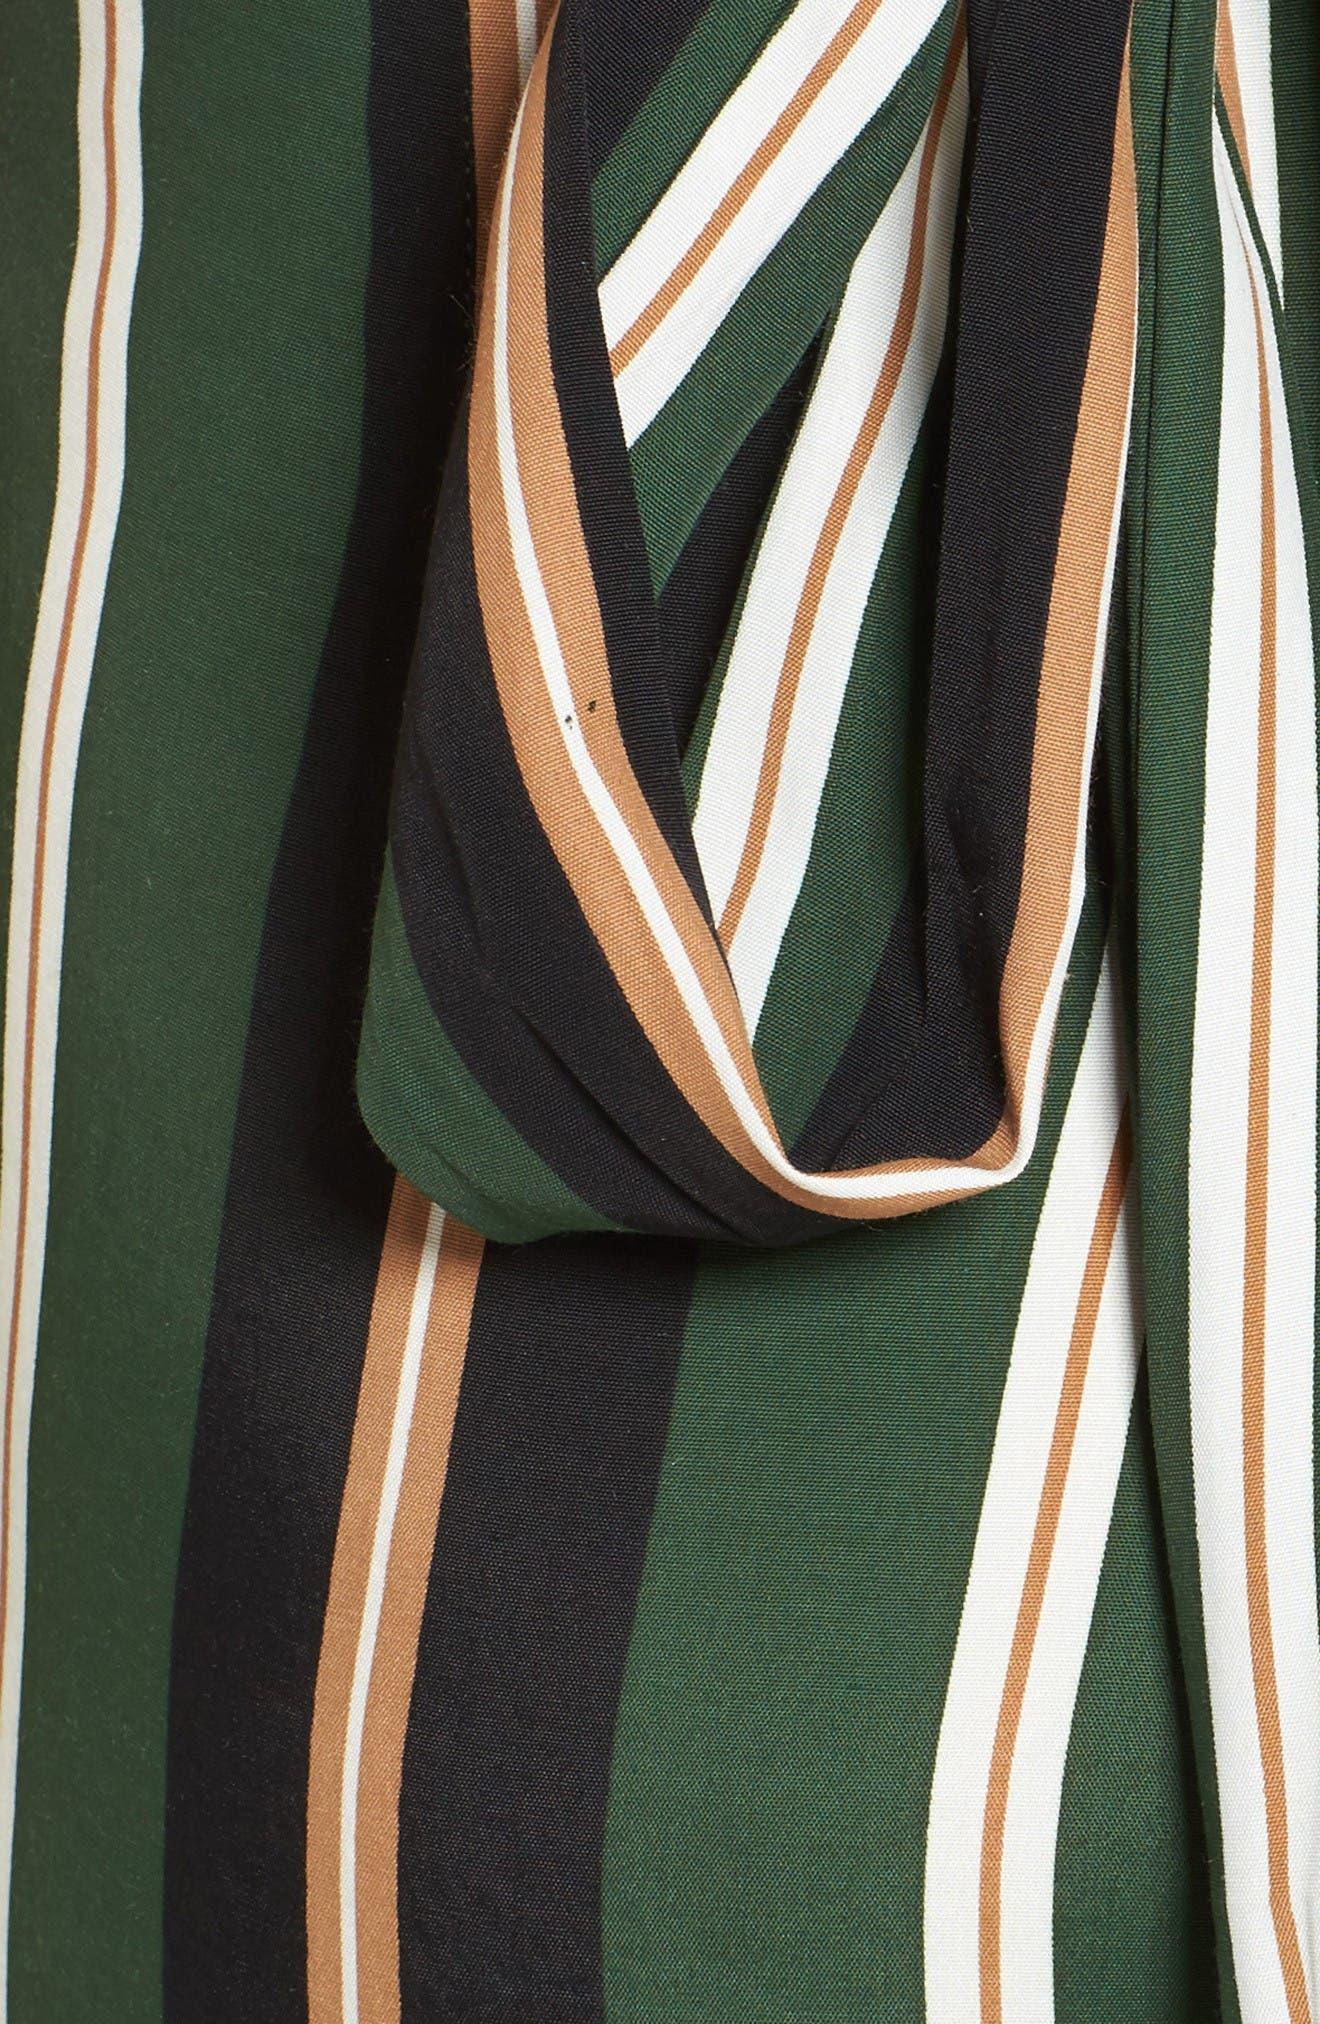 Cedric Jumpsuit,                             Alternate thumbnail 6, color,                             Firenze Stripes Green/Blk